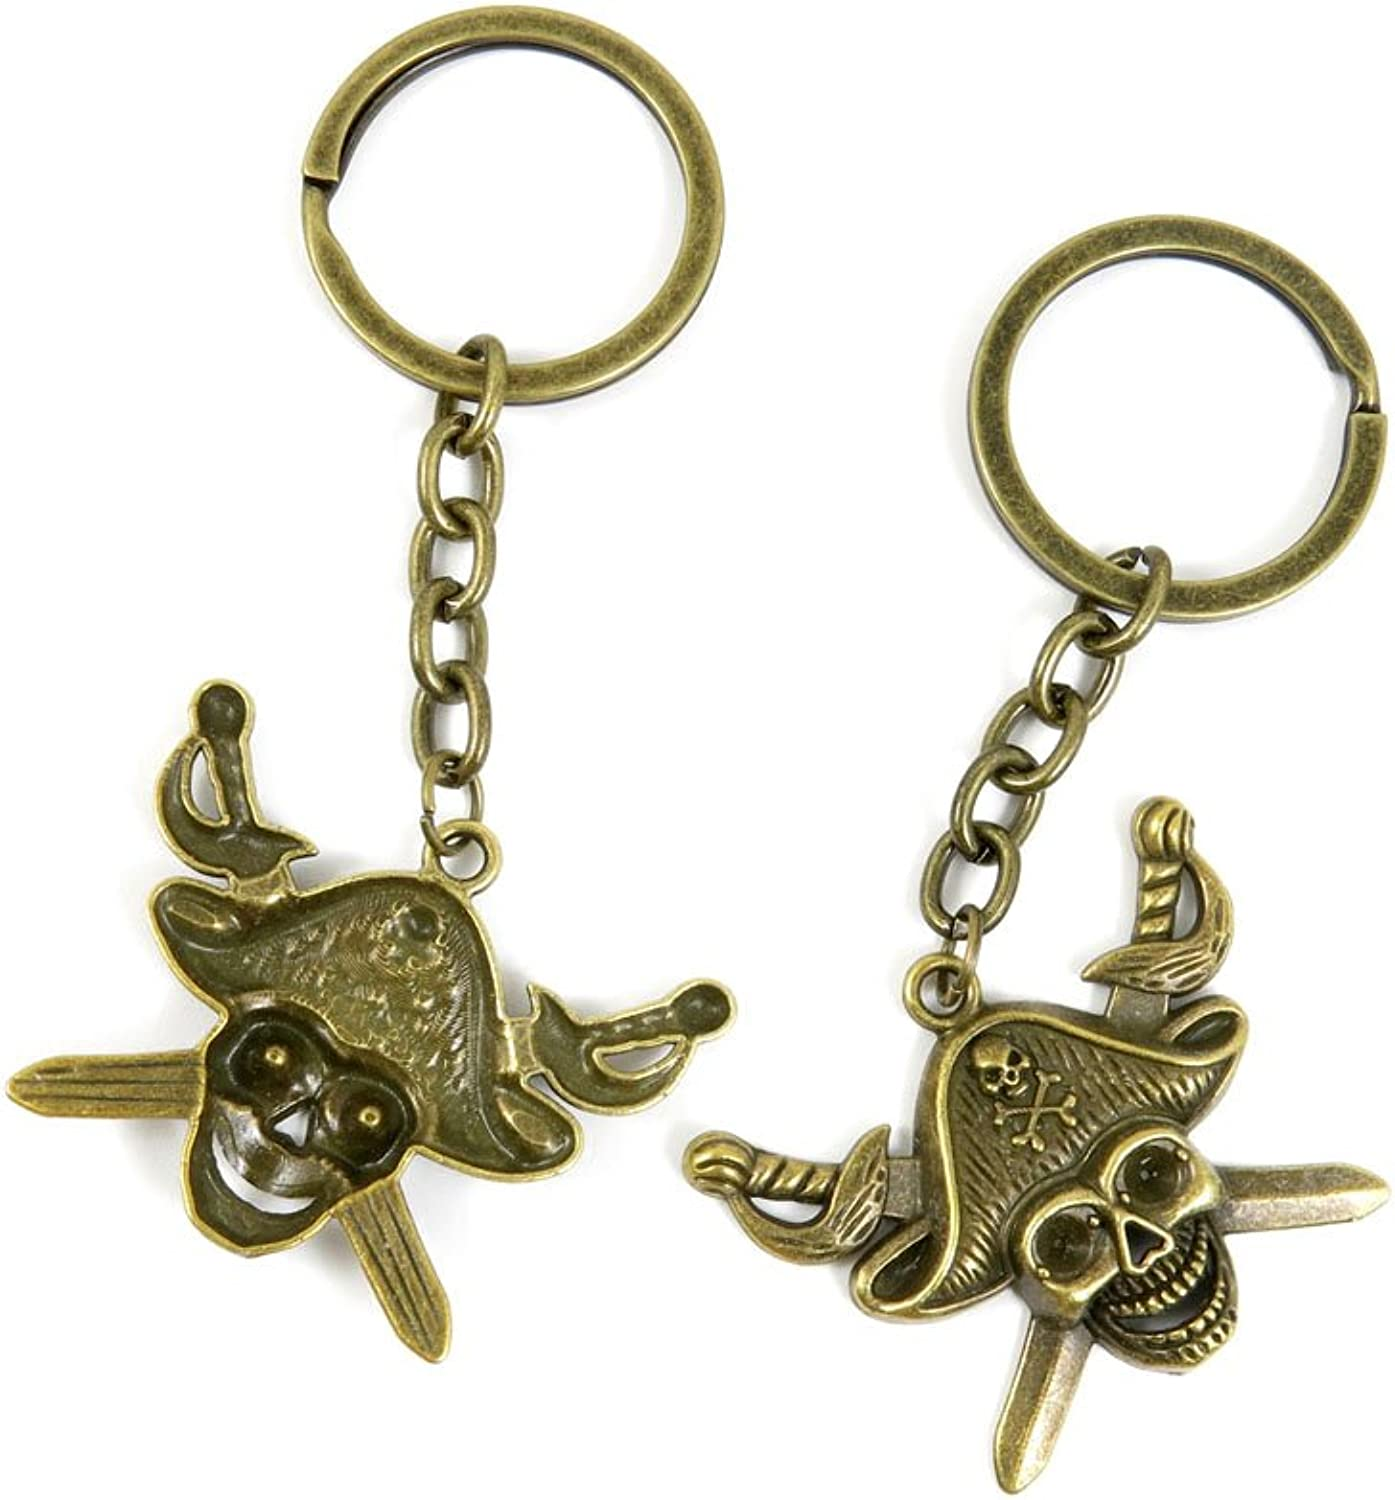 100 PCS Keyrings Keychains Key Ring Chains Tags Jewelry Findings Clasps Buckles Supplies F3EF0 Pirate Skull